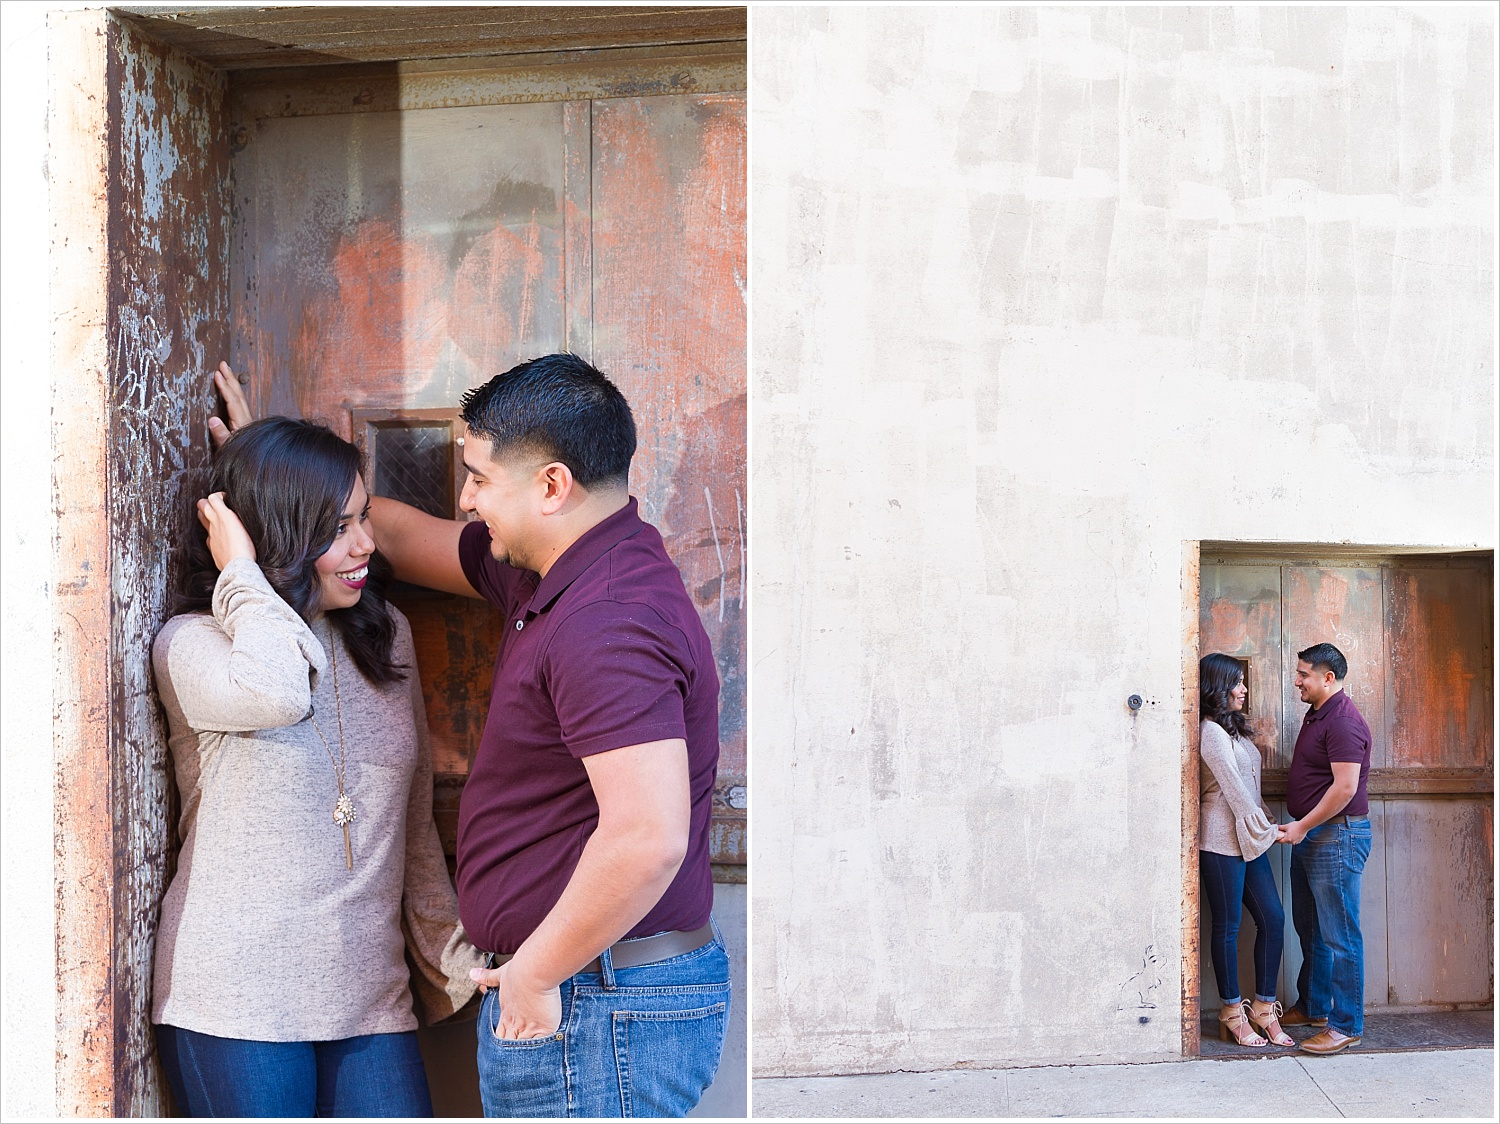 A future bride and groom smile at one another in a doorway downtown on 7th street during their Waco, Texas engagement photo session - Jason & Melaina Photography - www.jasonandmelaina.com